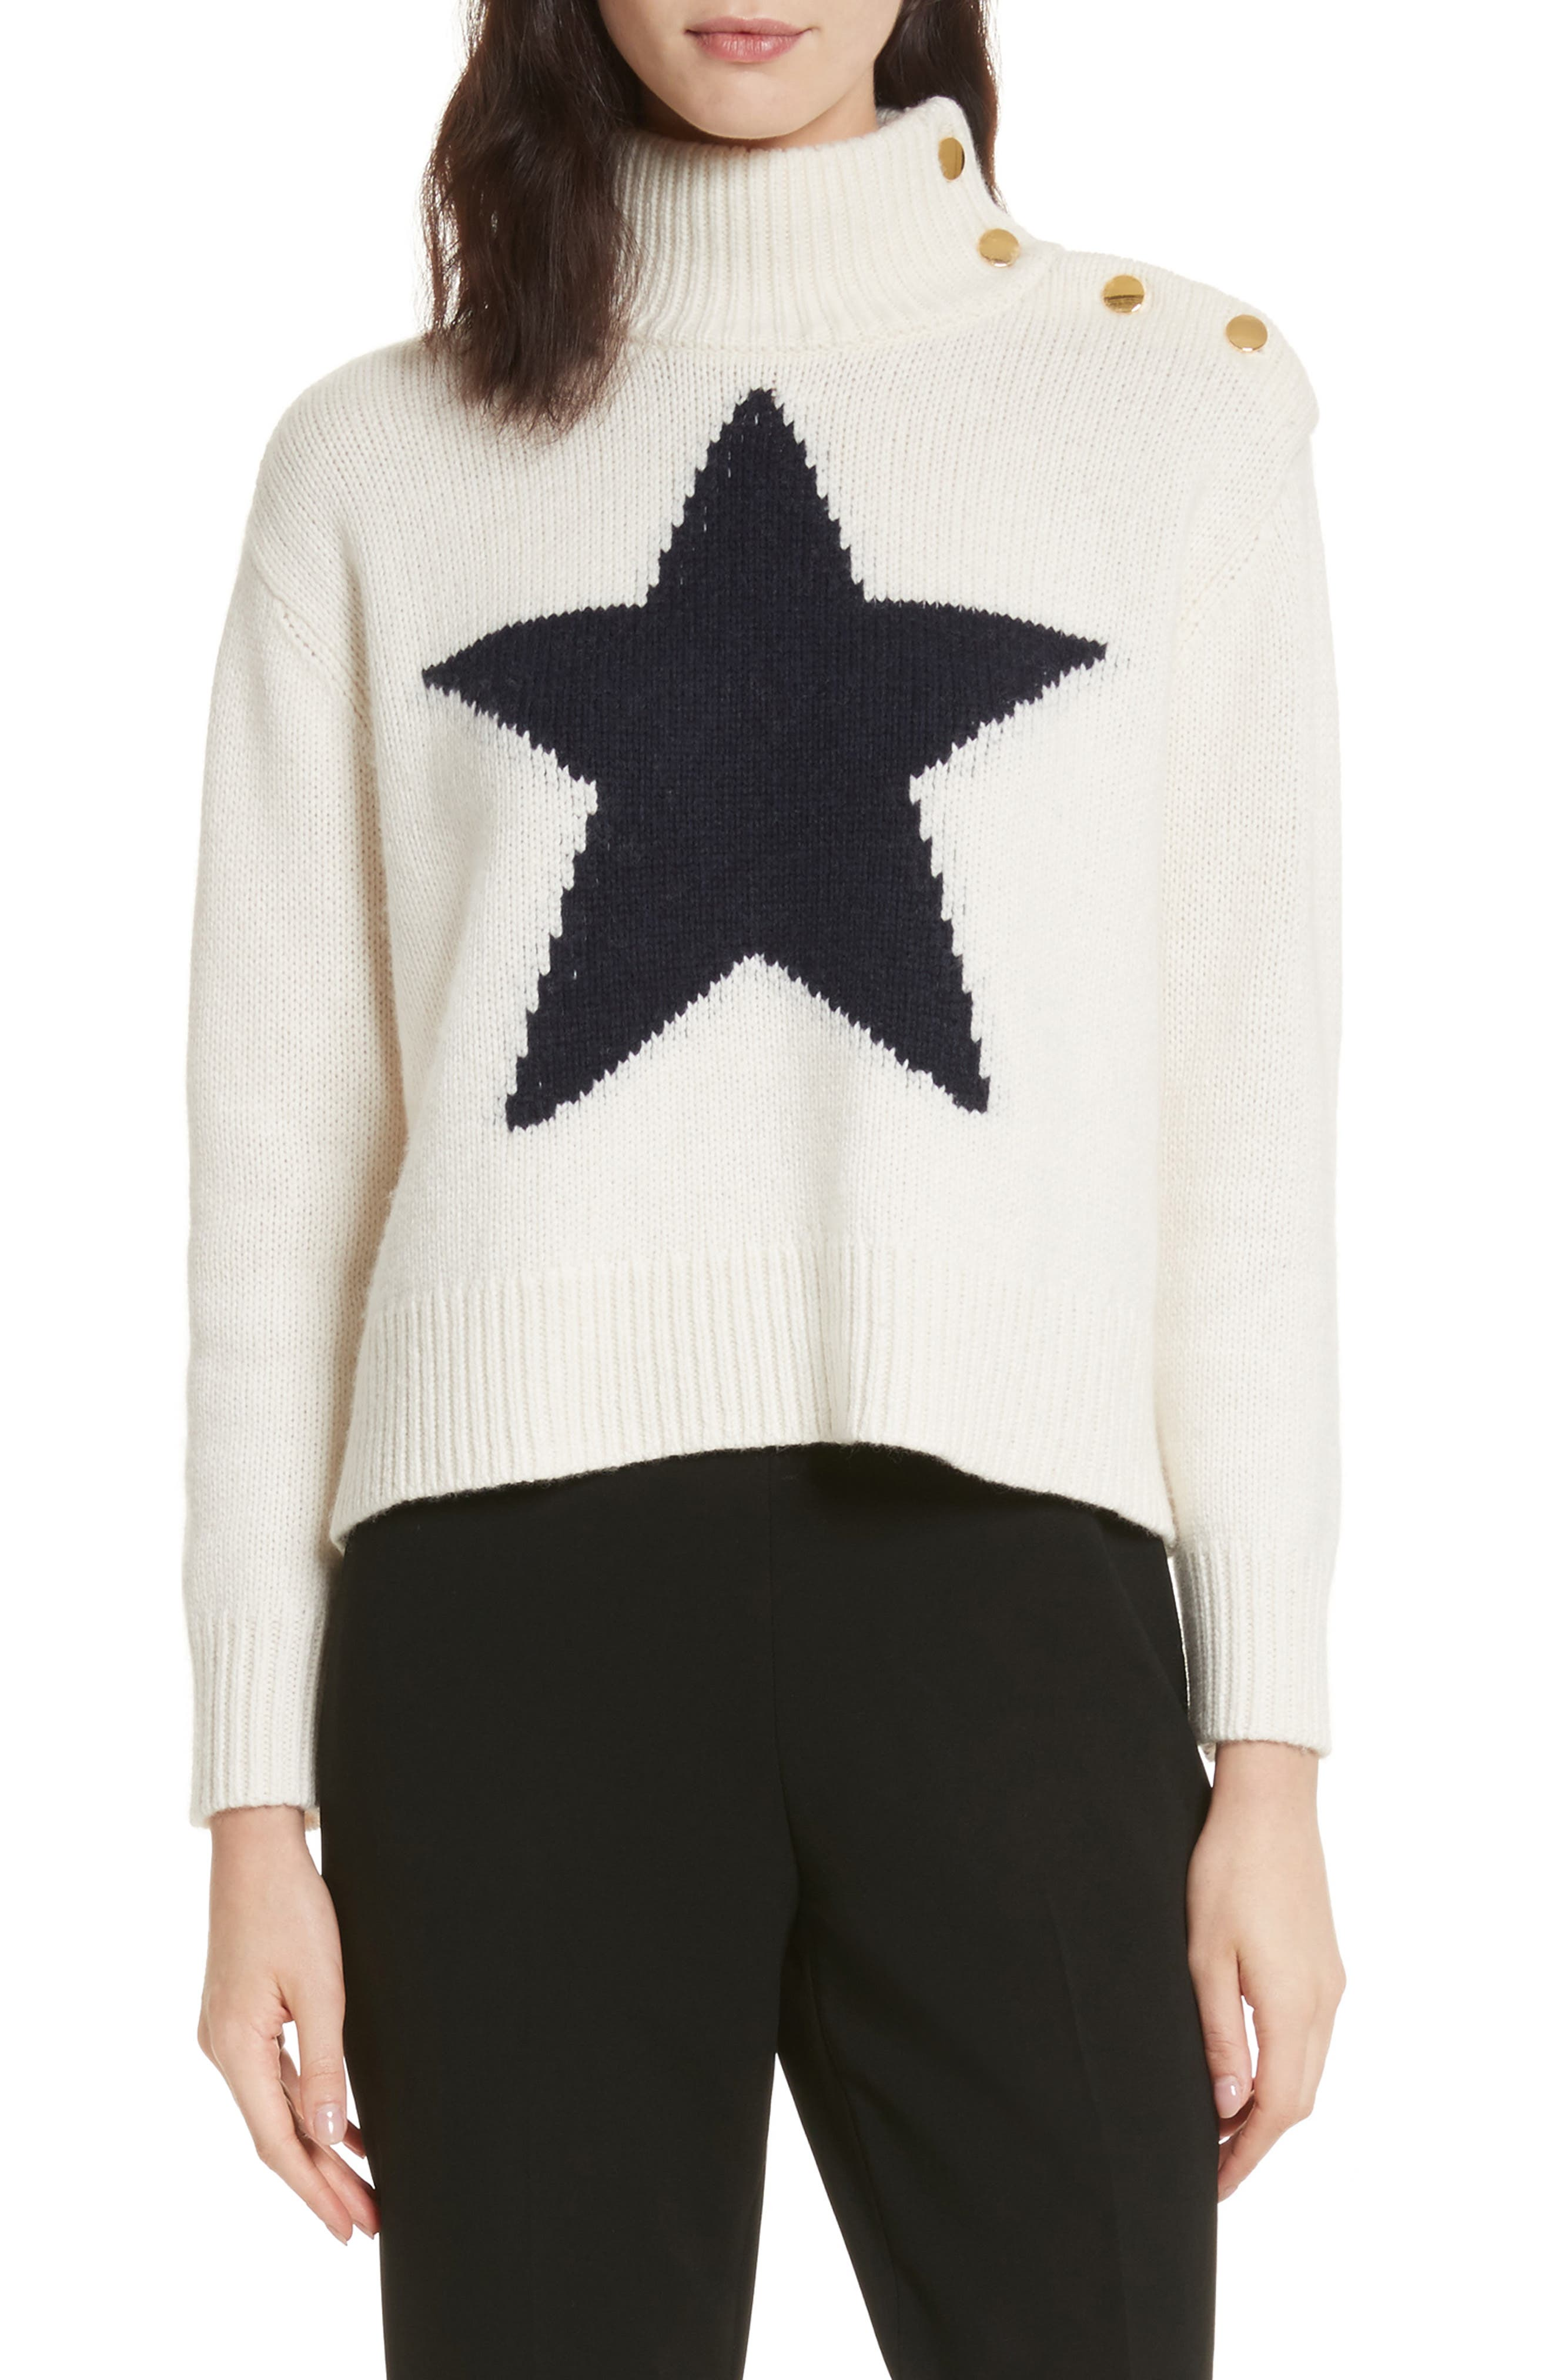 star turtleneck sweater,                             Main thumbnail 1, color,                             251